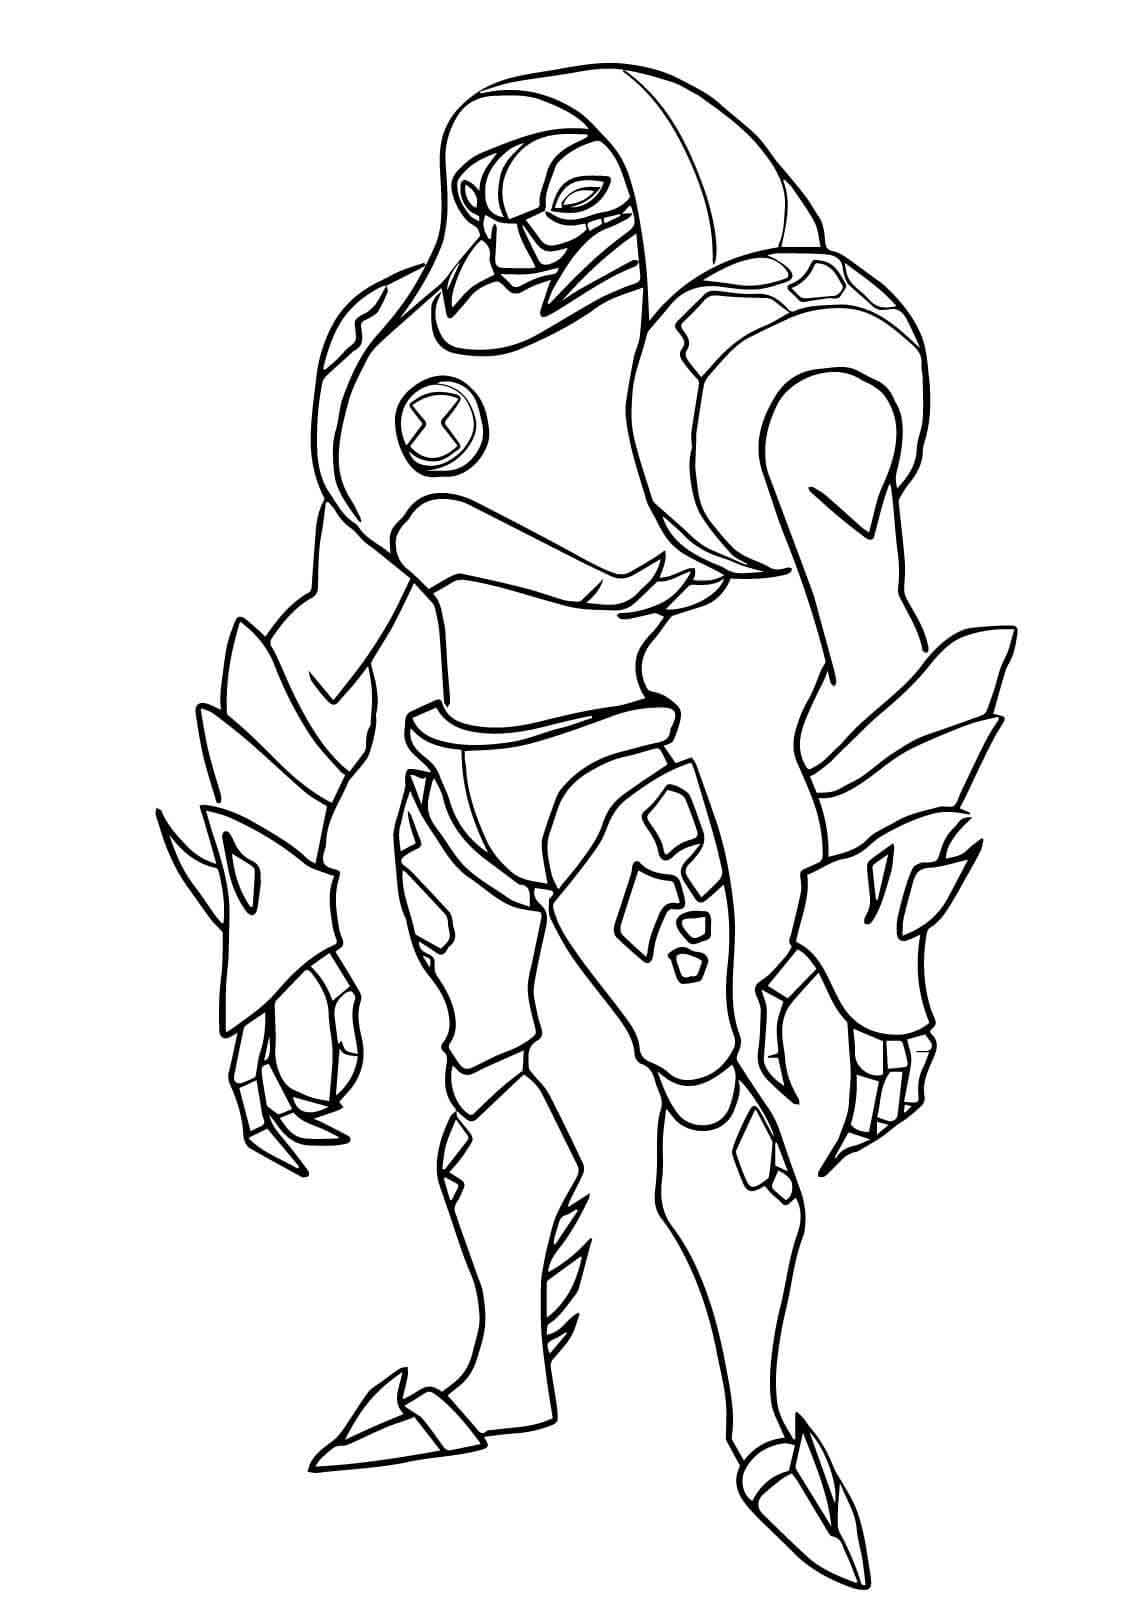 ben 10 alien coloring easy ben 10 rath coloring pages alien force rath colouring 10 alien coloring ben